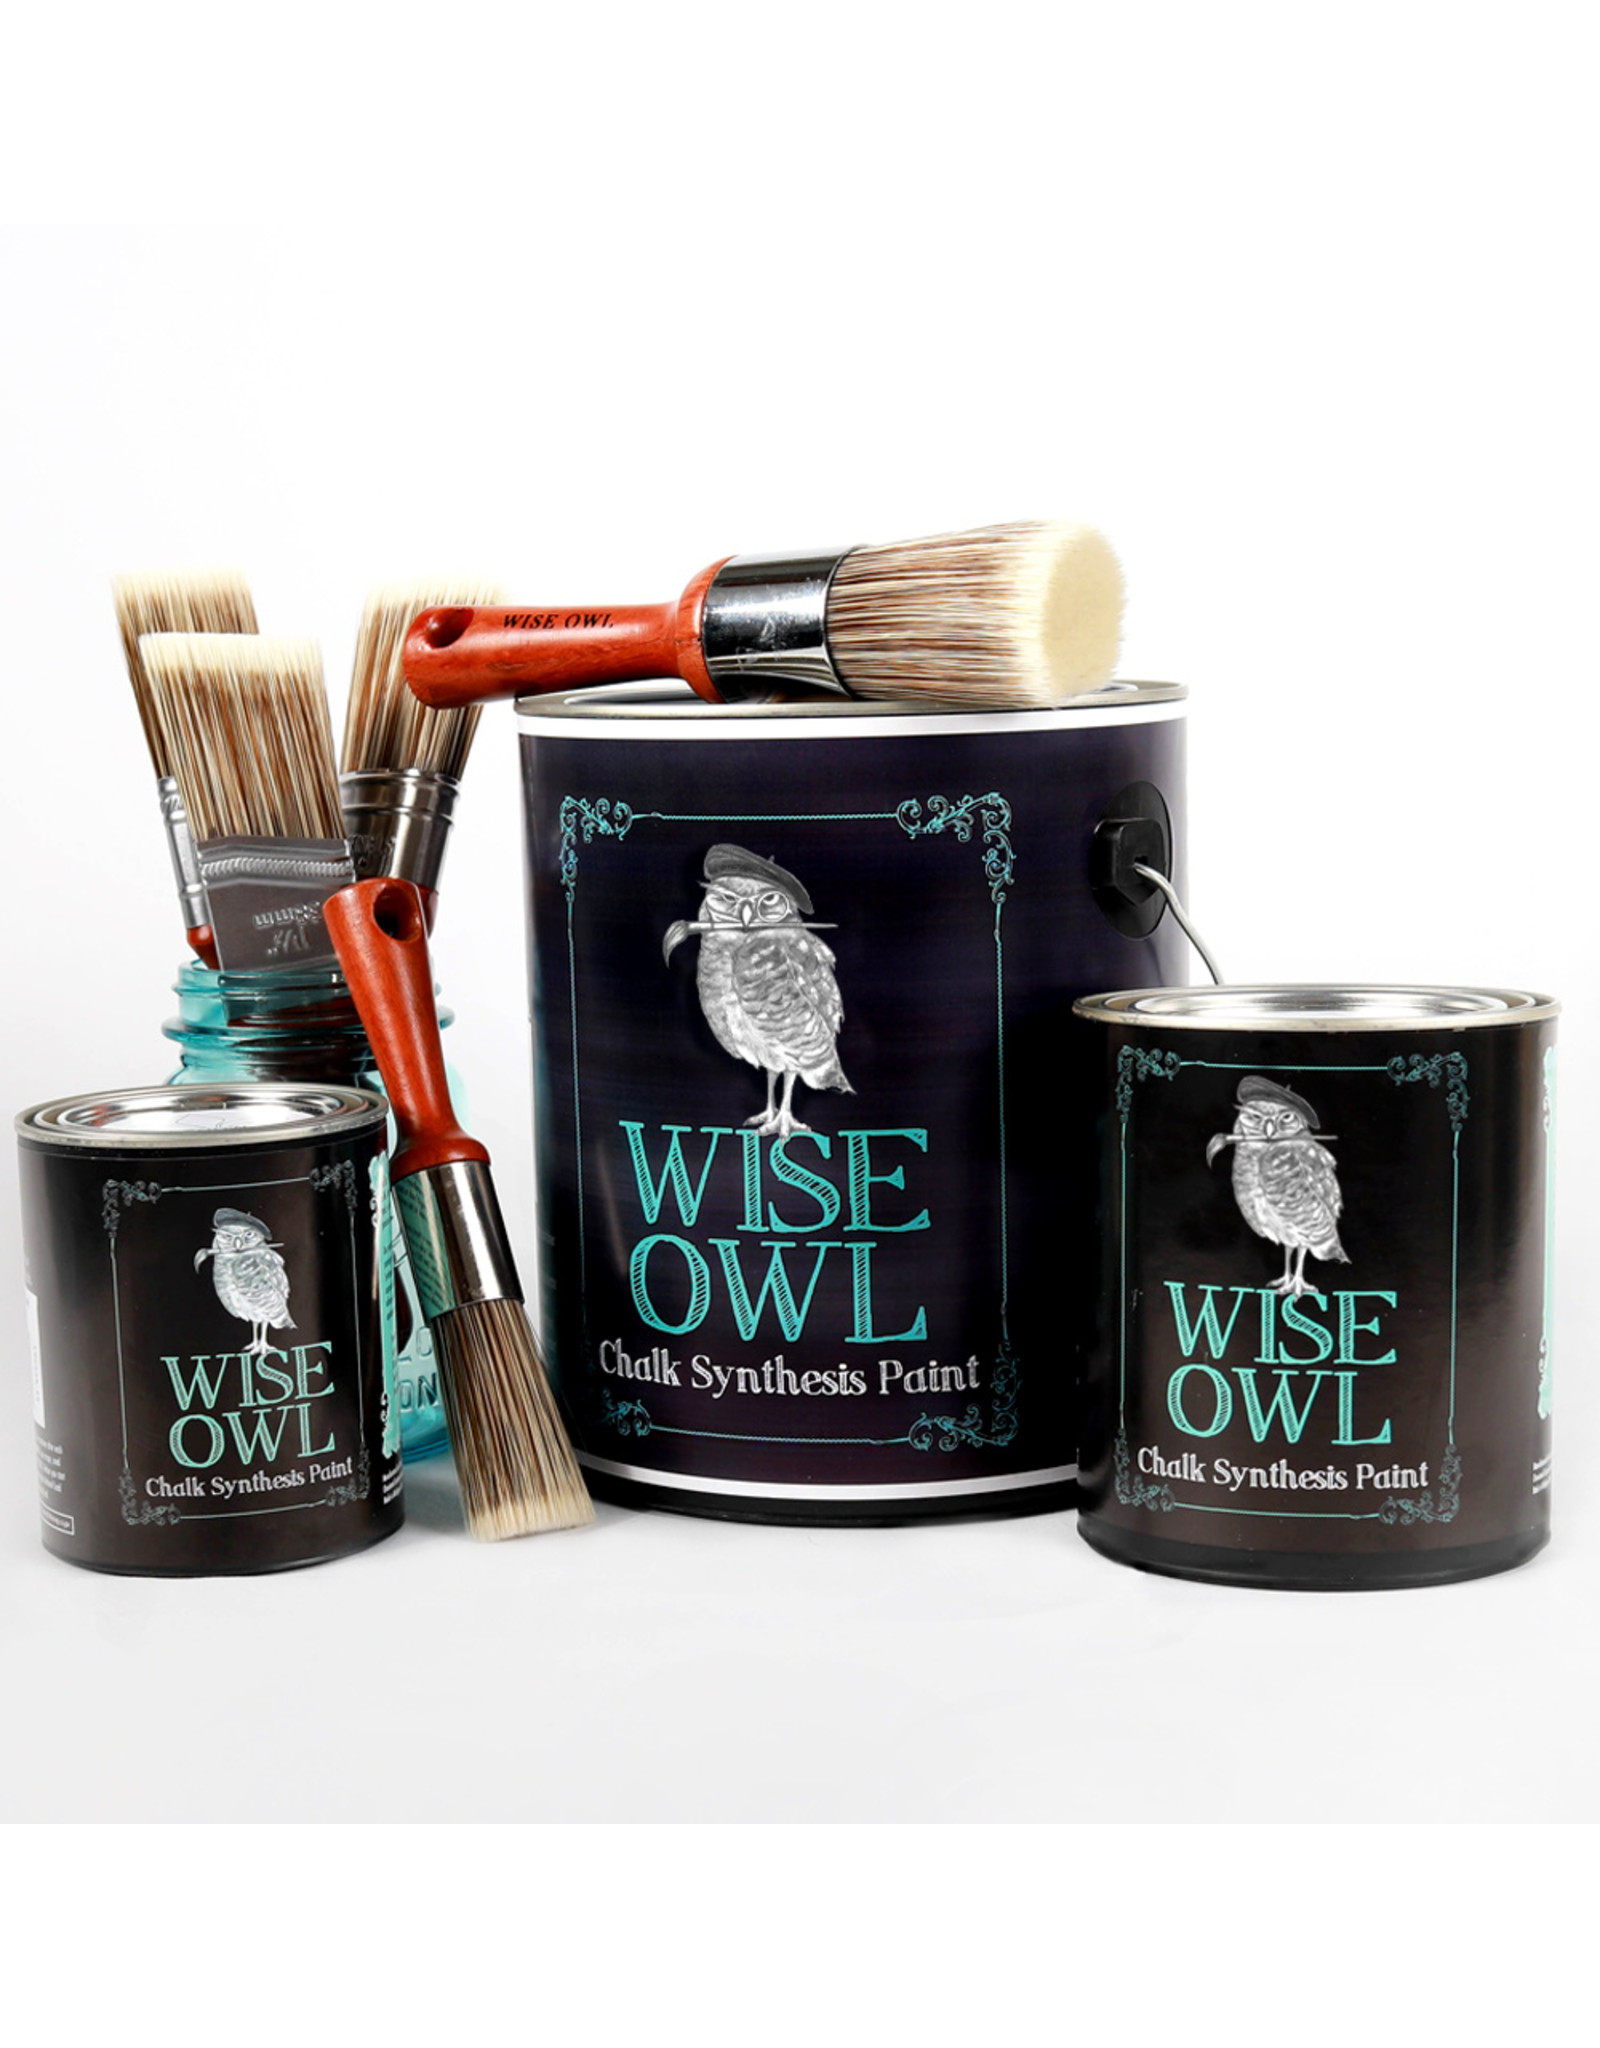 Wise Owl Paint Chalk Synthesis Paint-Madrid Pint